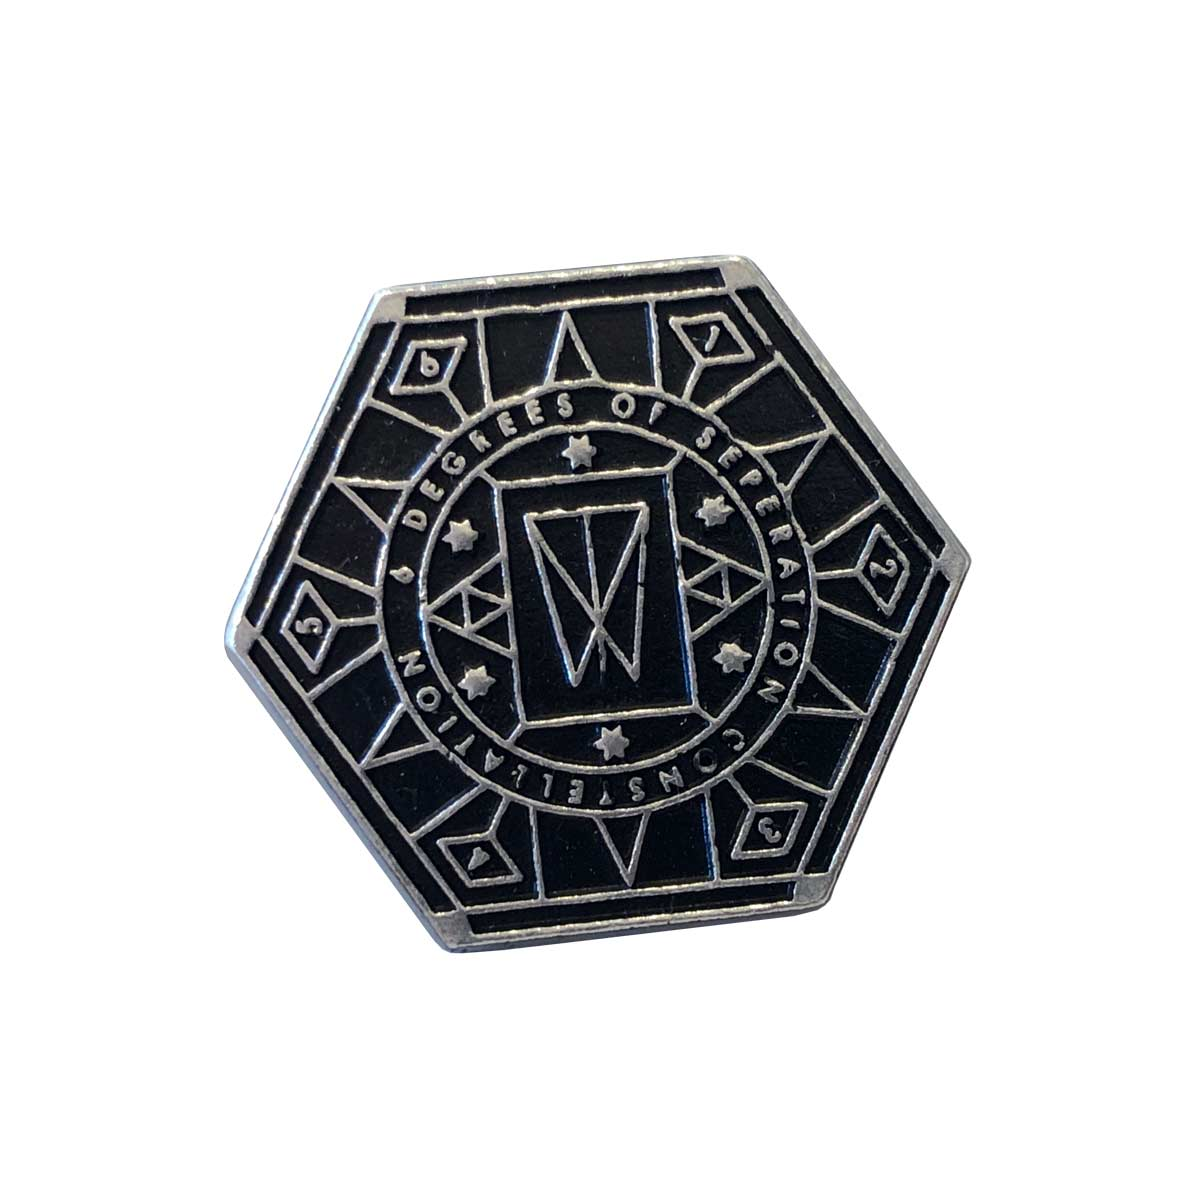 Hexagon – Pewter & Enamel Badge - Within Temptation